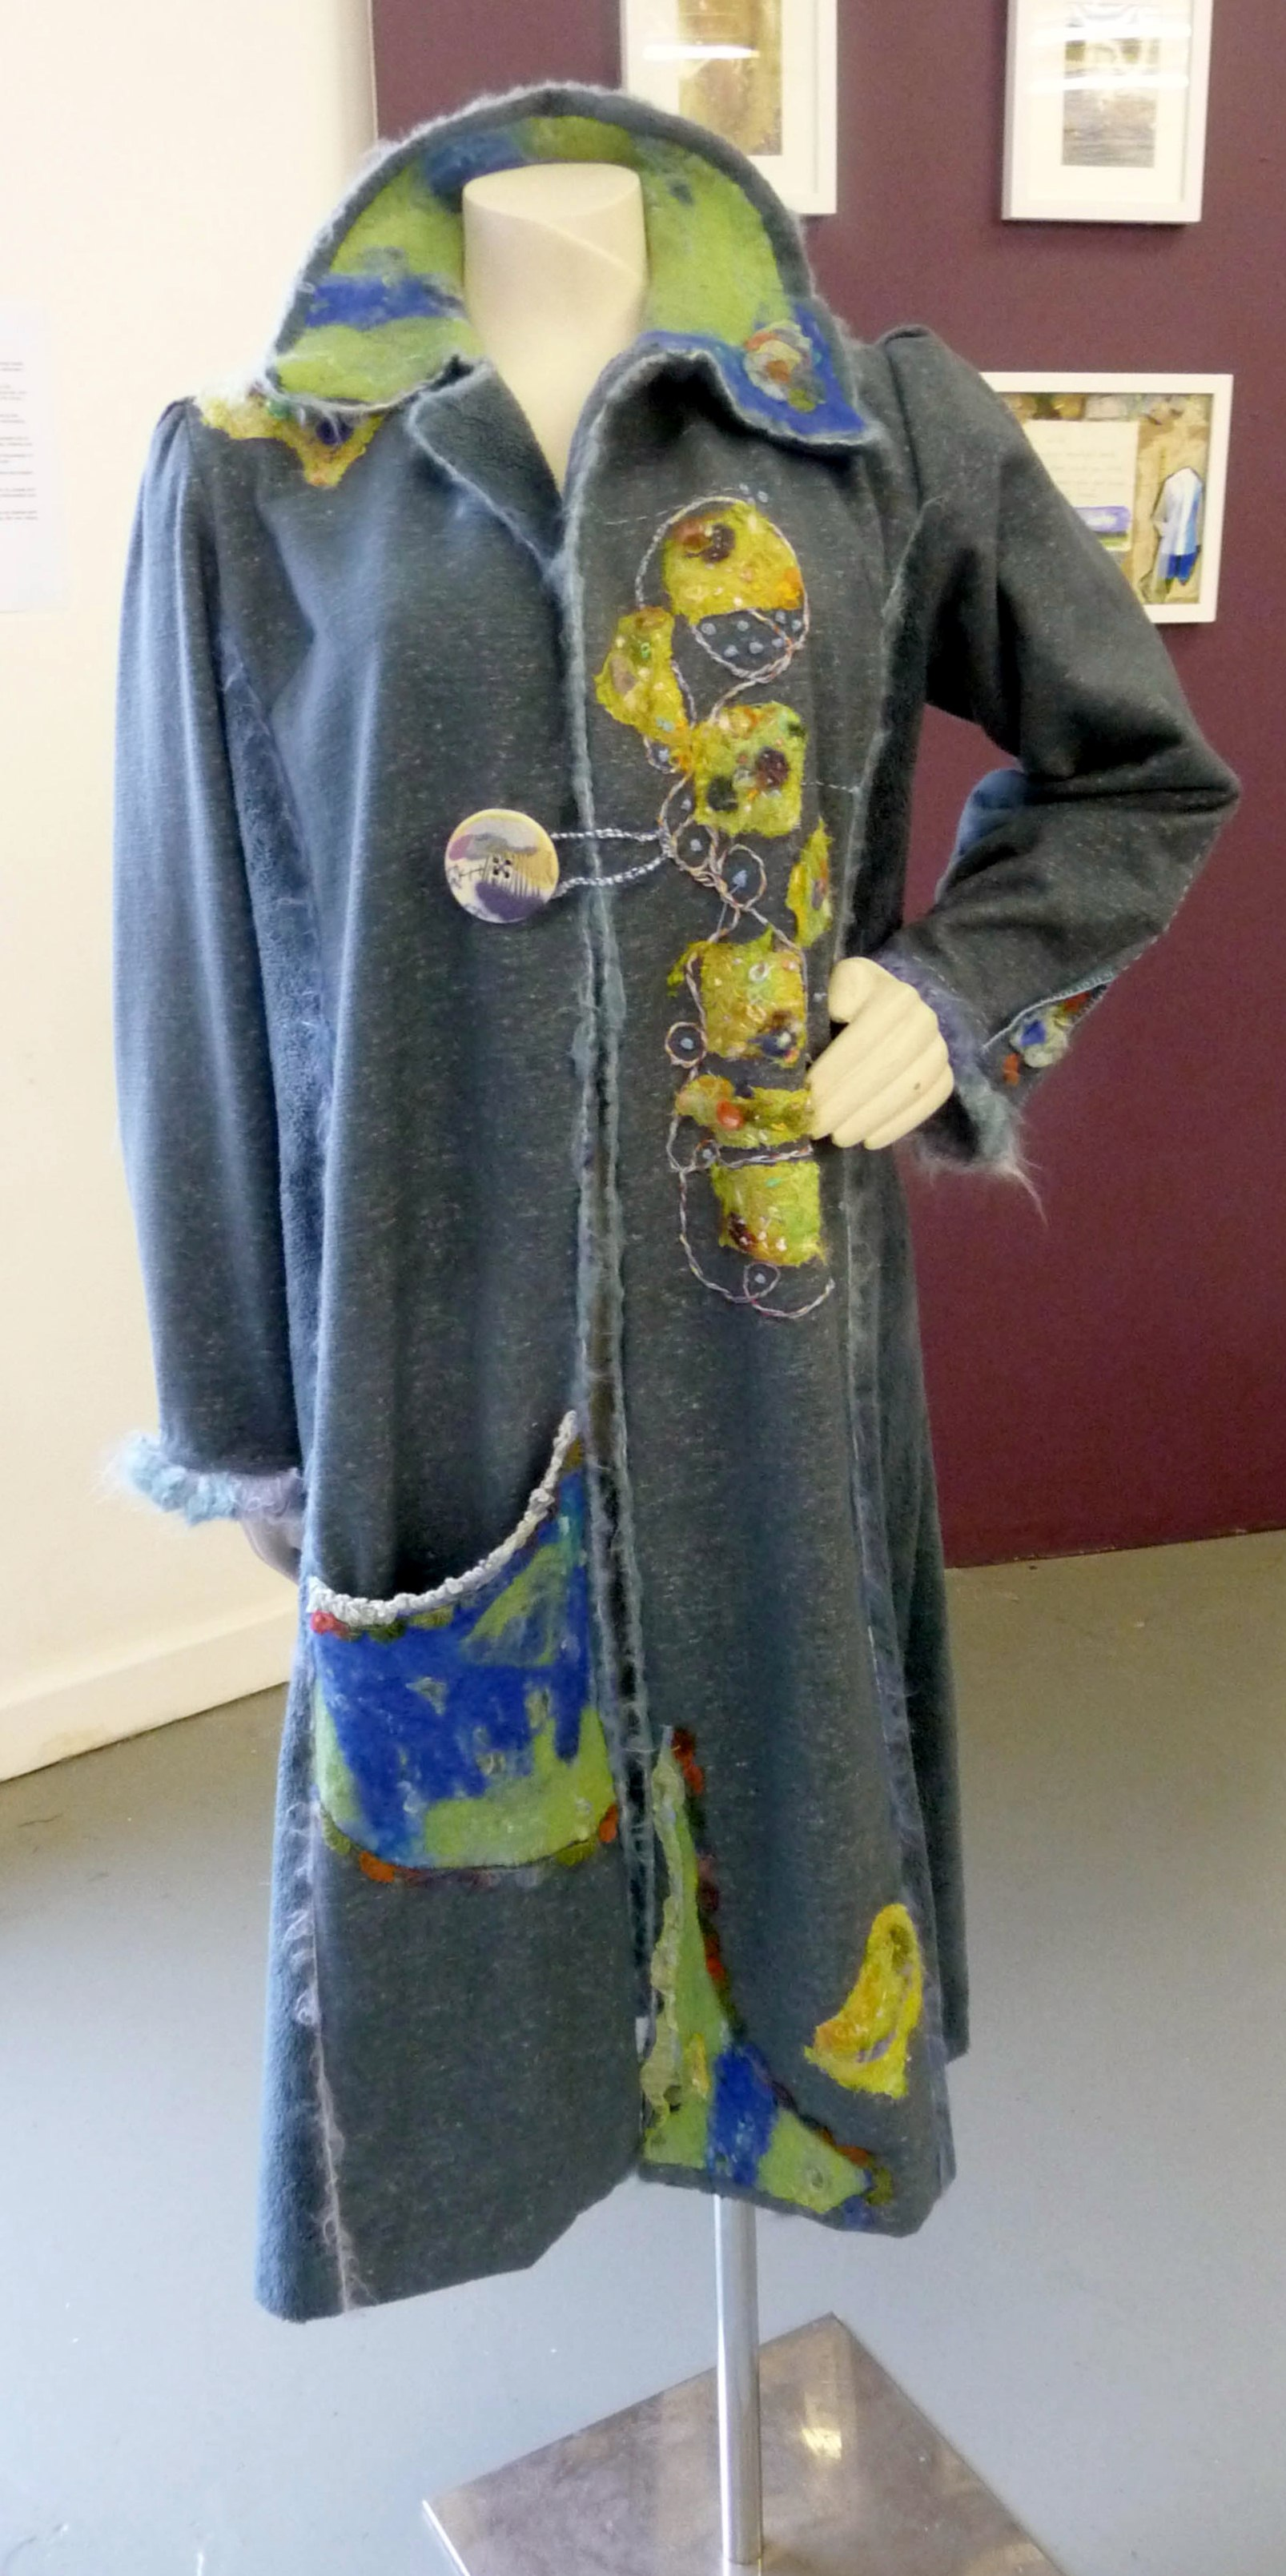 TOUCHING EARTH (COAT) by Yvonne Deegan, felting, machine and hand embroidery (front view)